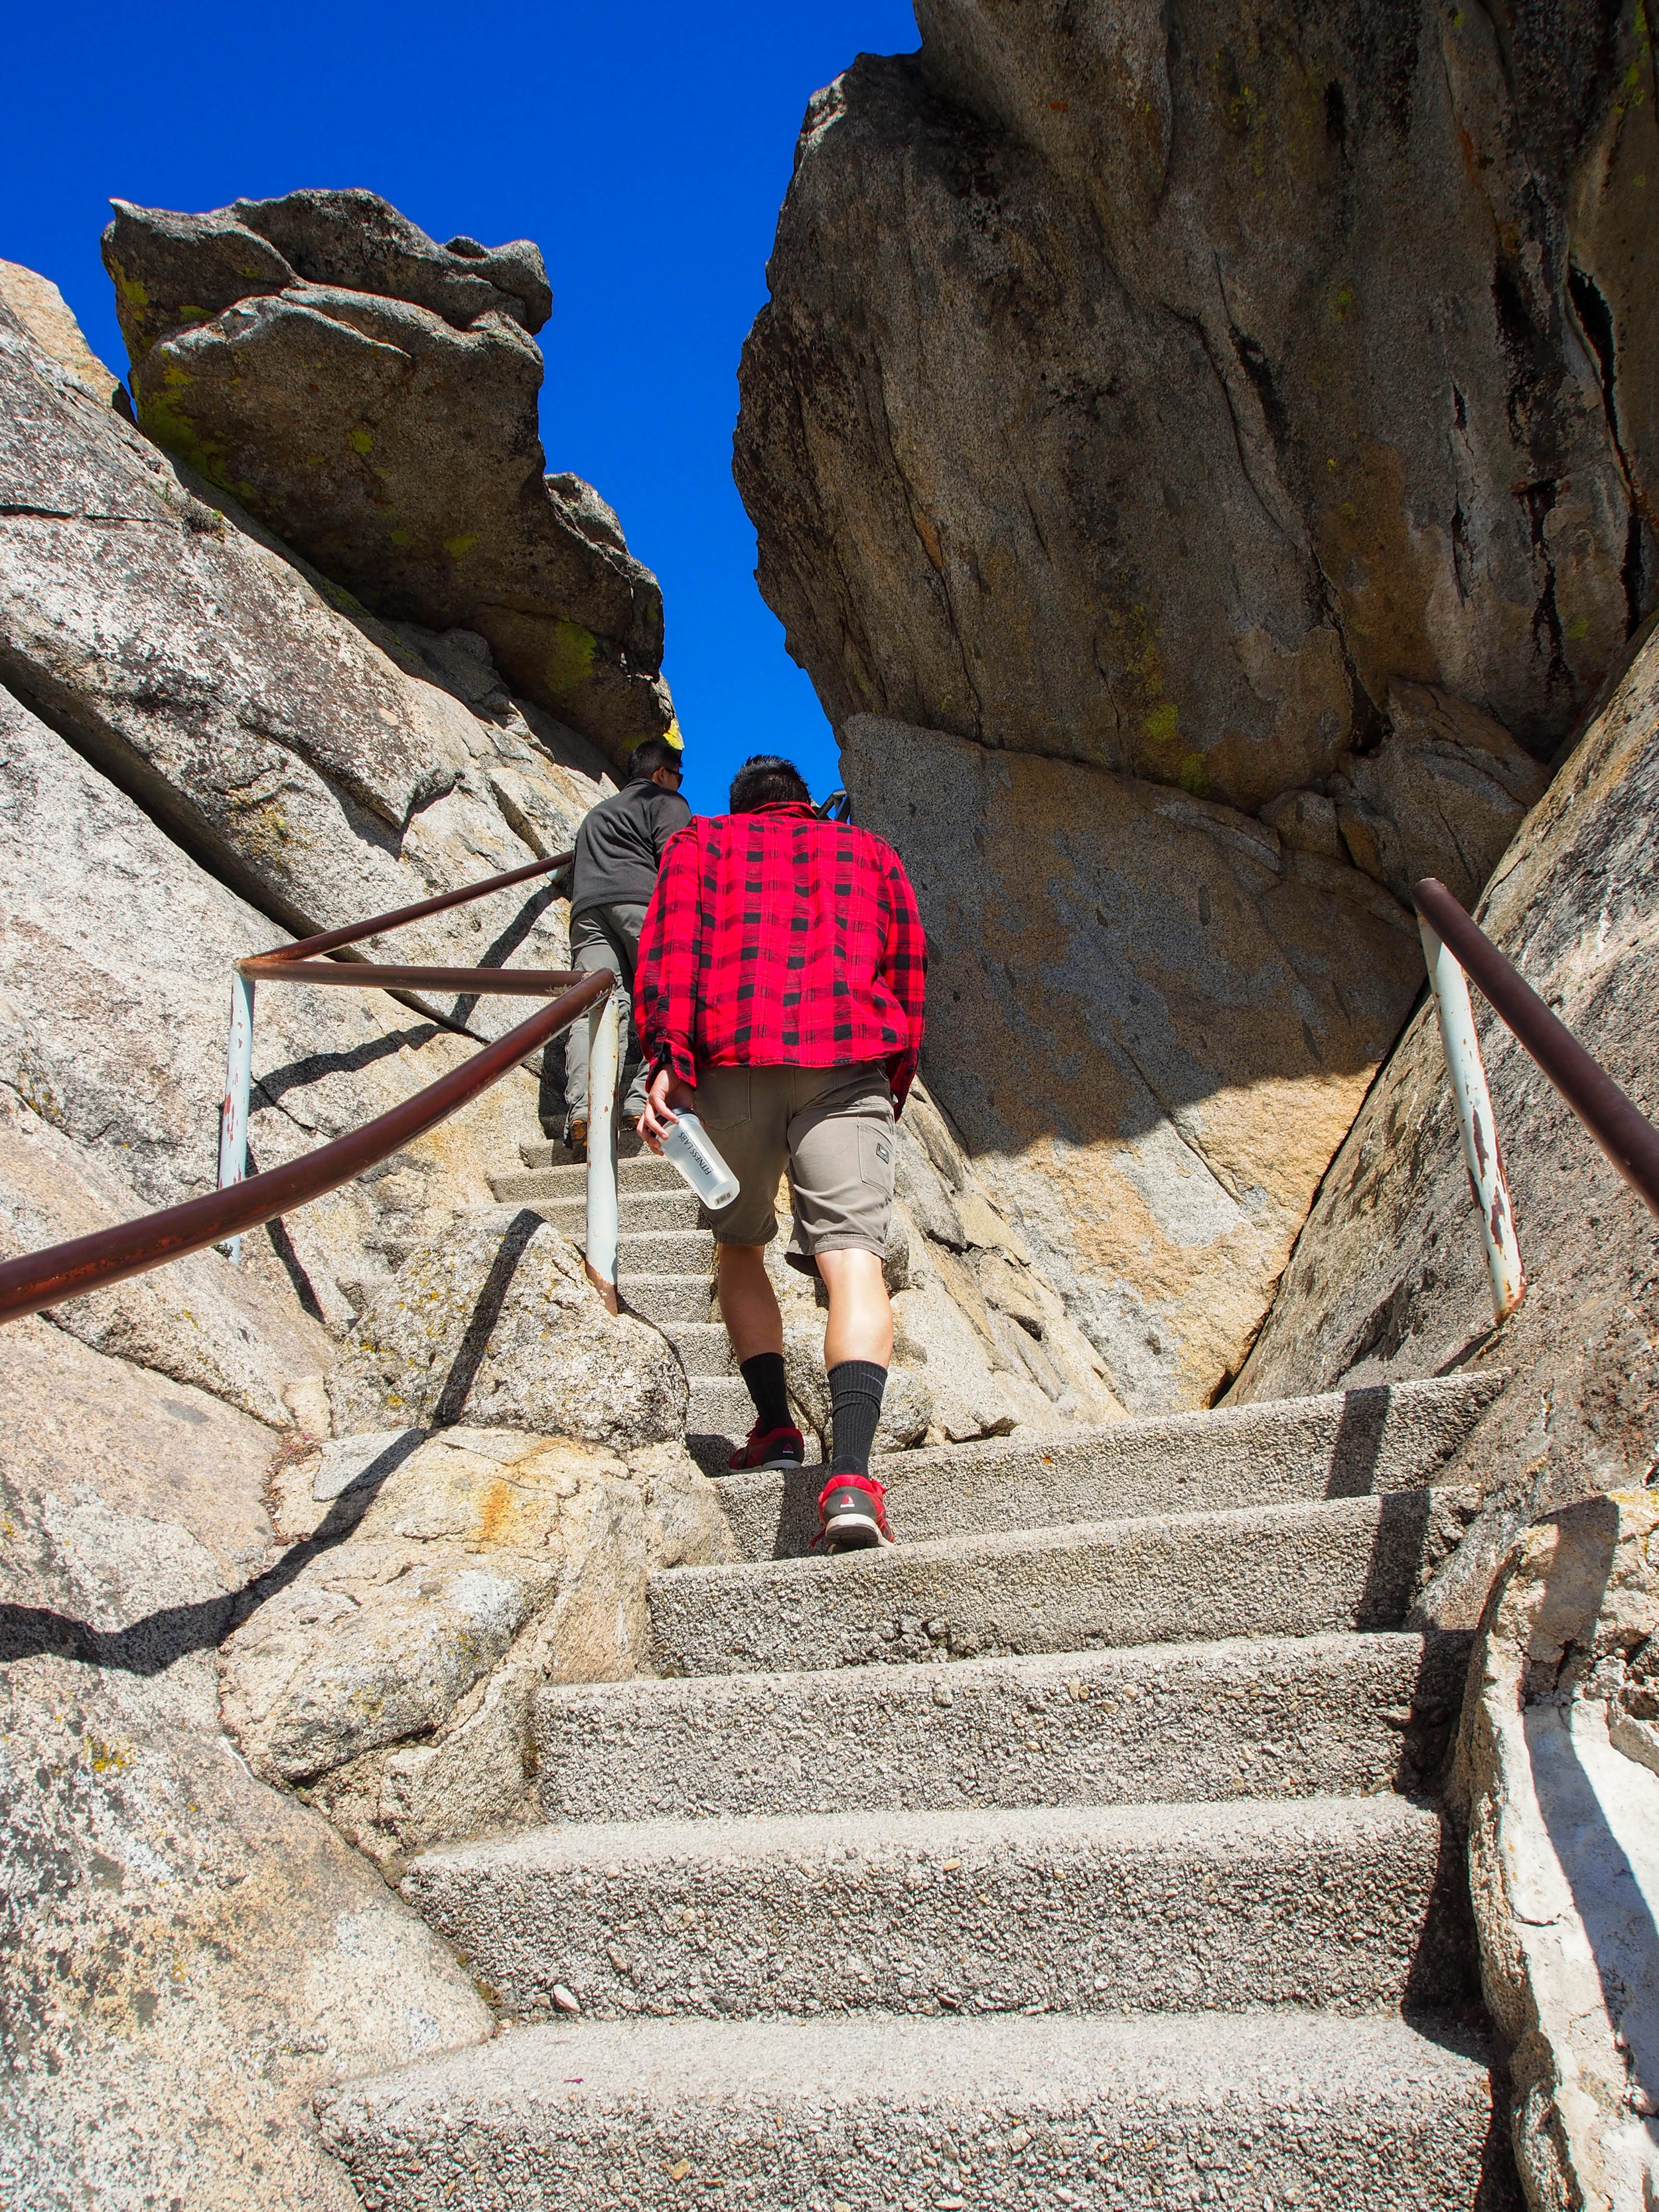 The steep steps are well maintained and not slippery